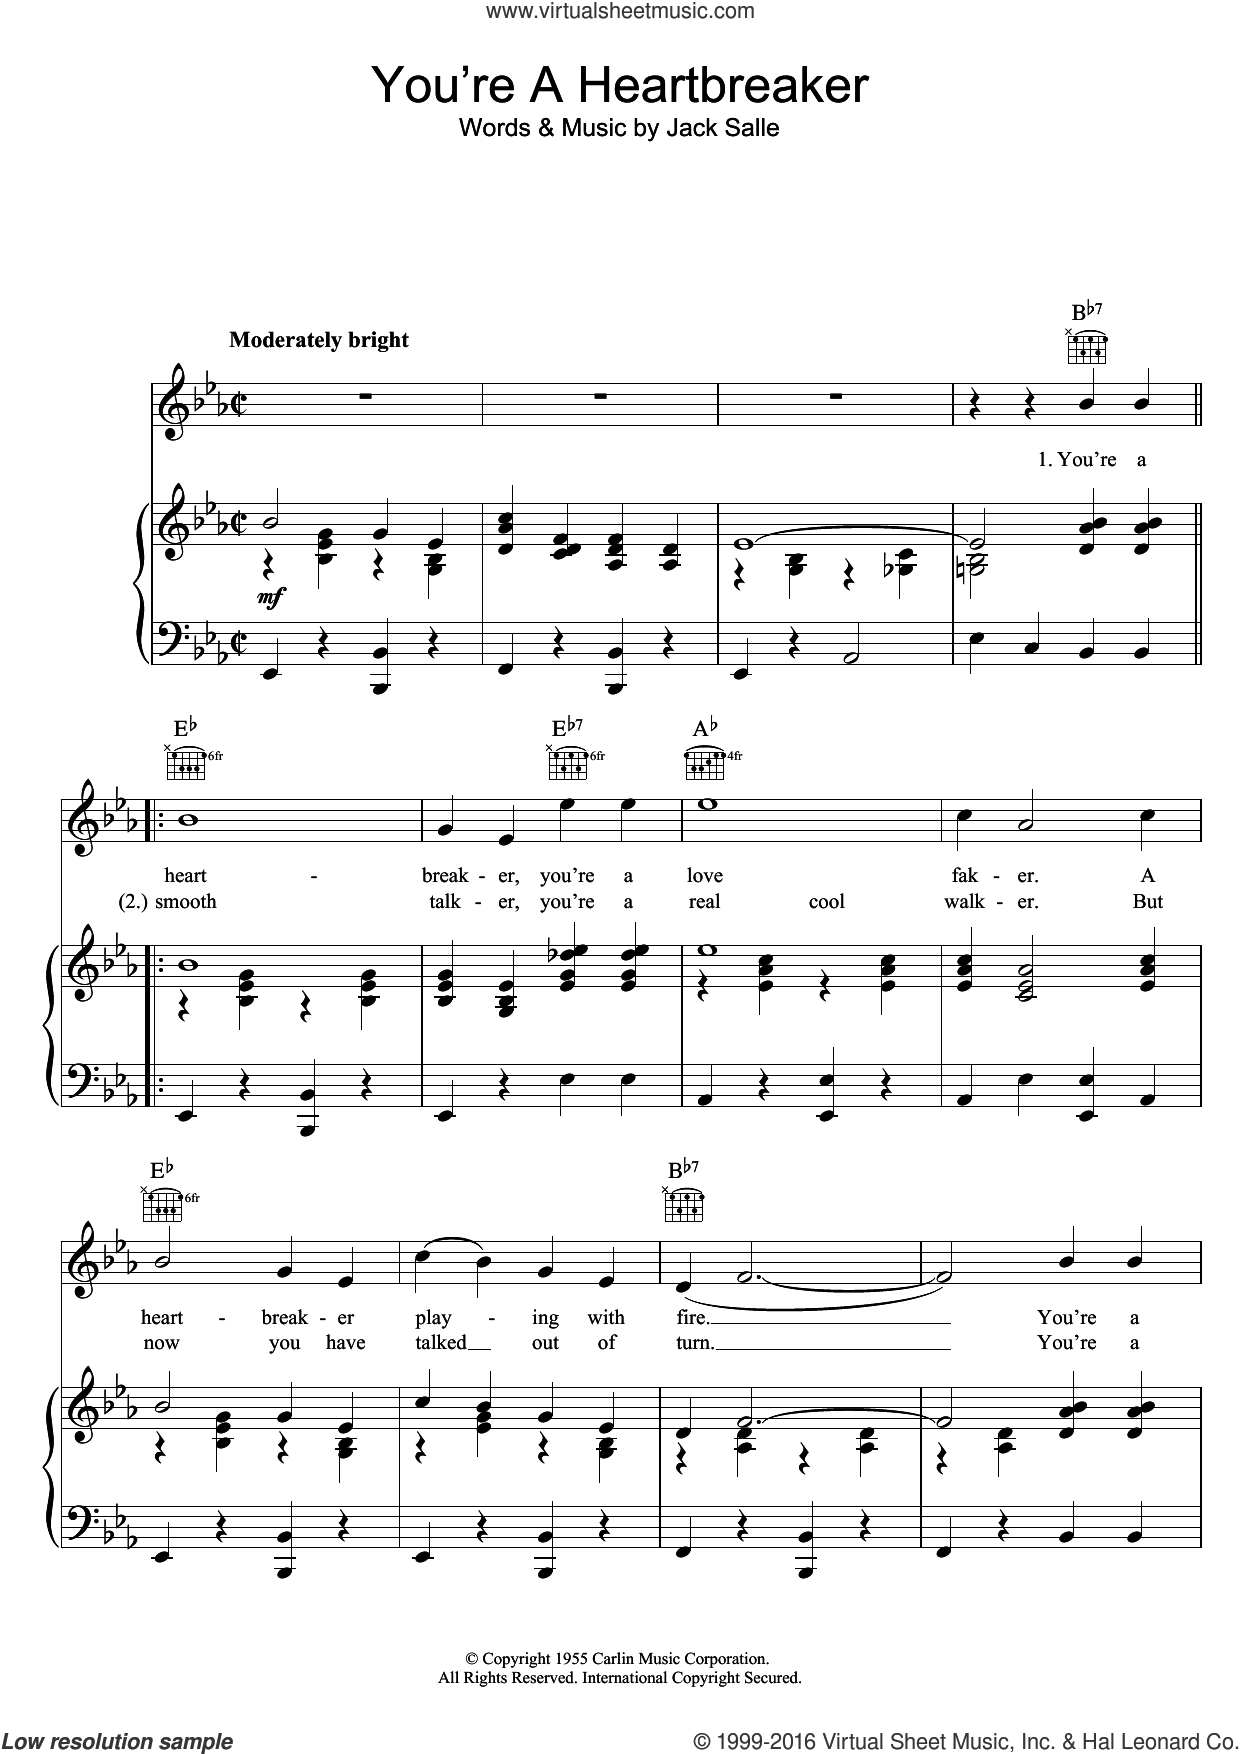 You're A Heartbreaker sheet music for voice, piano or guitar by Jack Sallee and Elvis Presley. Score Image Preview.